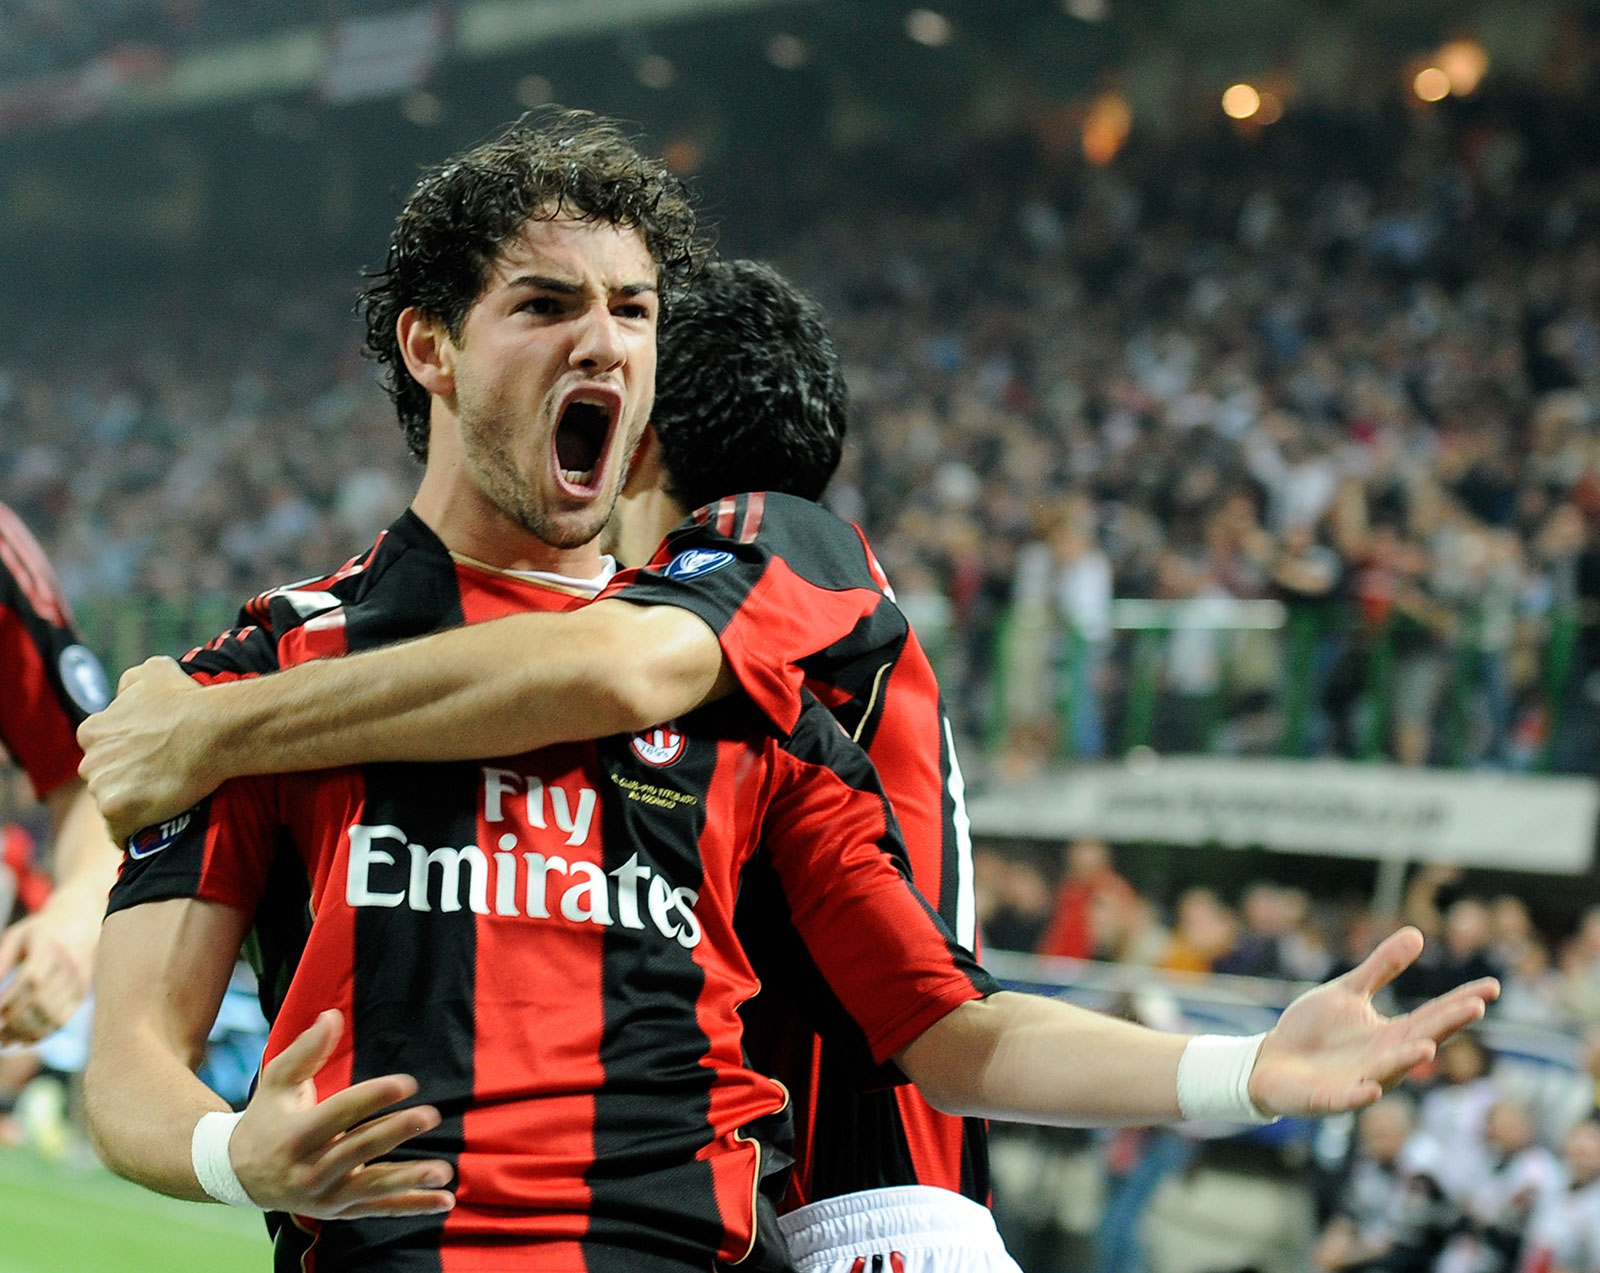 Alexandre Pato celebrating during Milan-Inter at Stadio San Siro on April 2, 2011. (Photo by Claudio Villa/Getty Images)